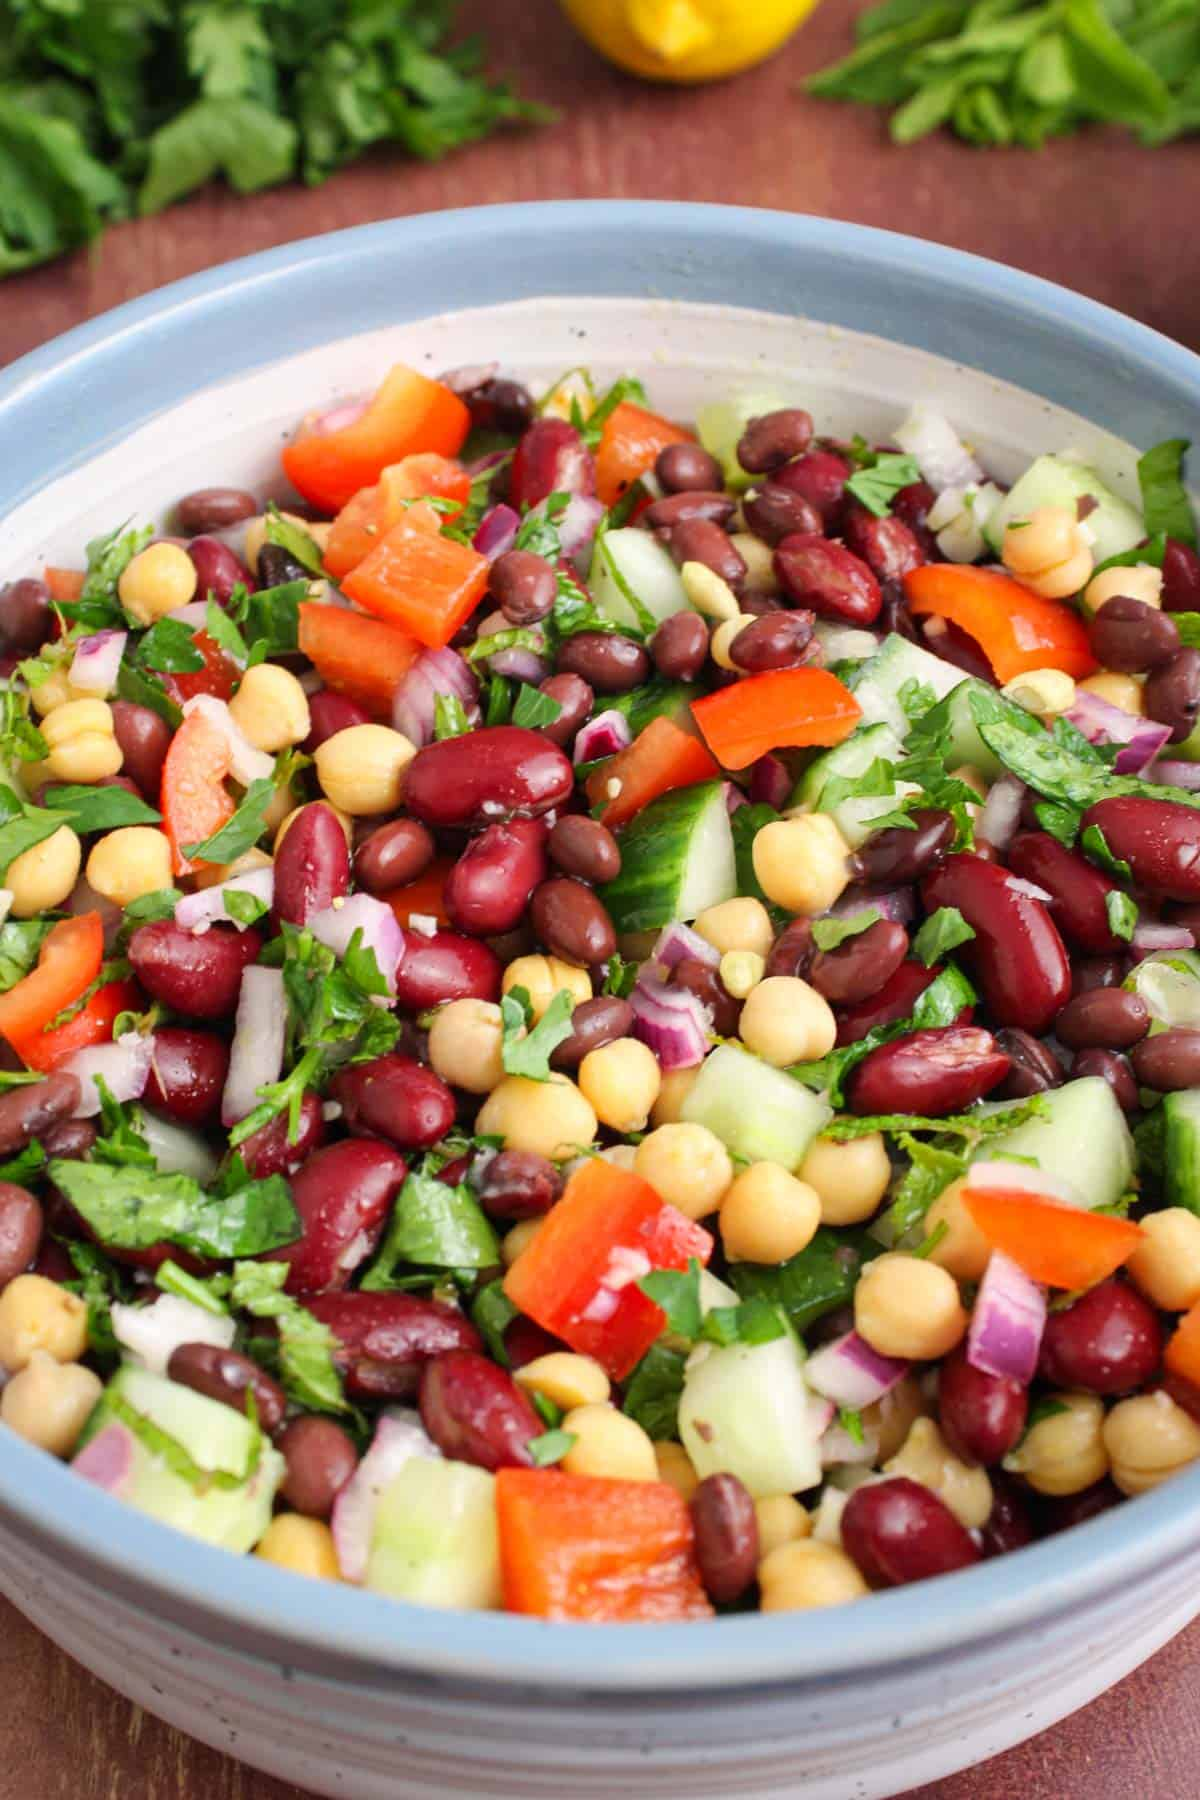 Three-Bean Salad with Lemon, Mint and Parsley in Bowl